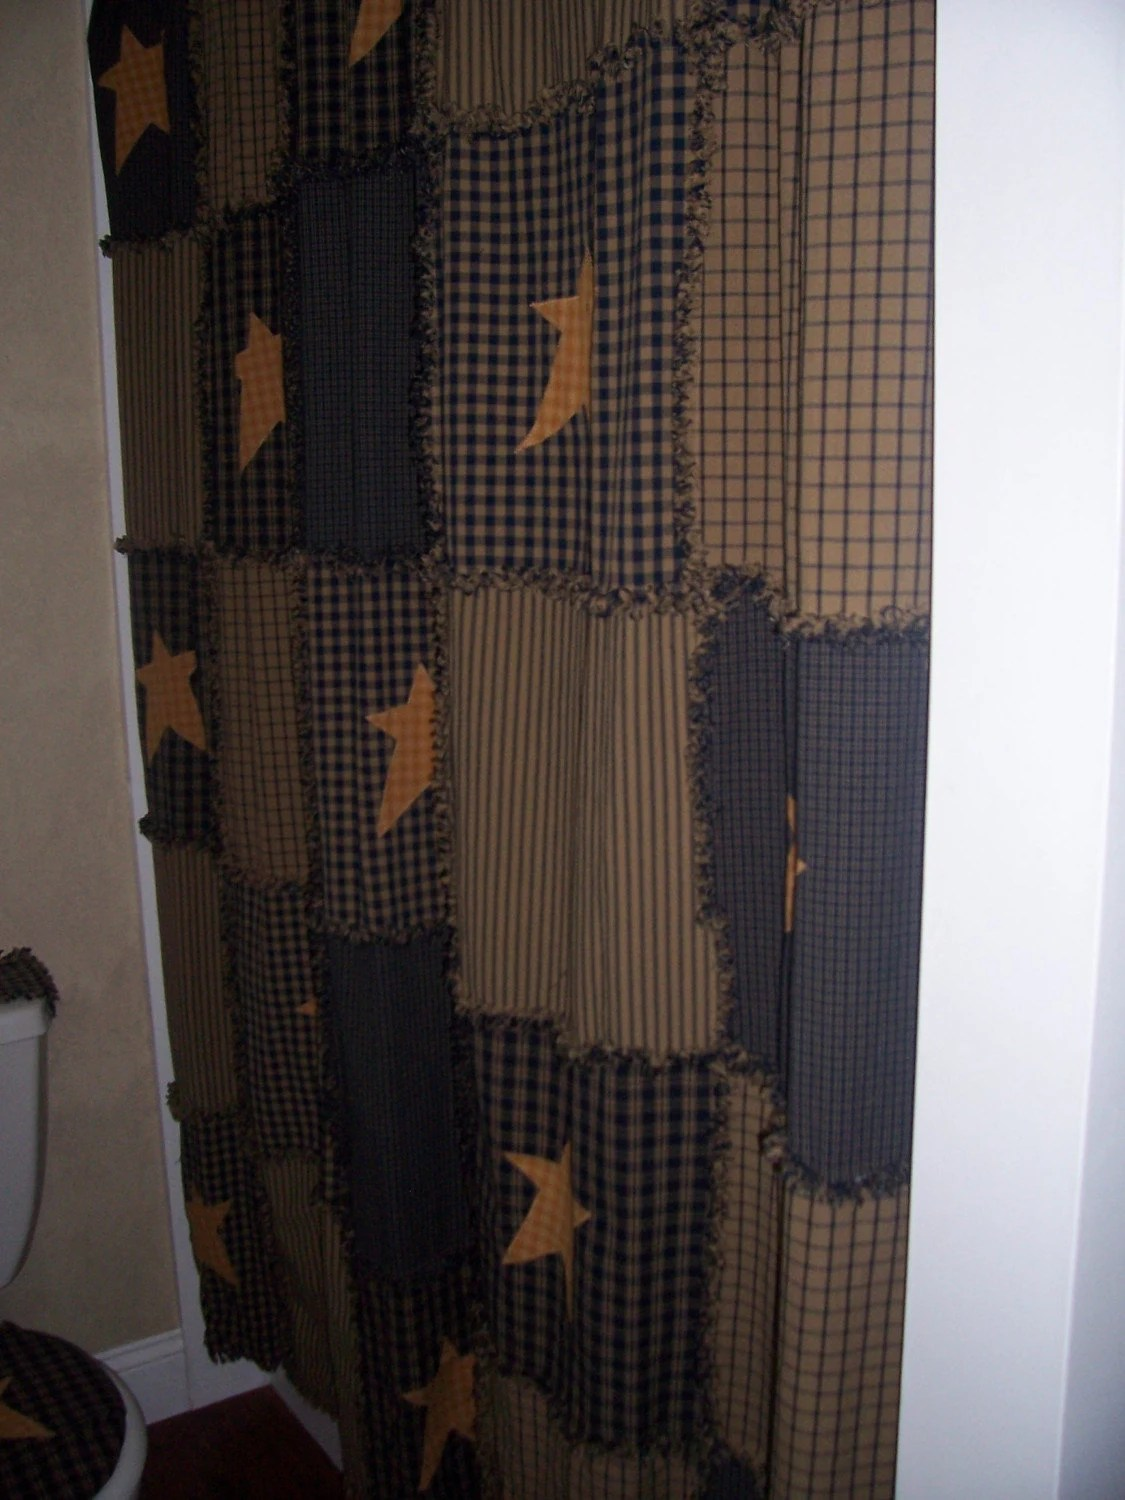 Primitive Raggy Shower Curtain Navy and Tan by kbardo on Etsy